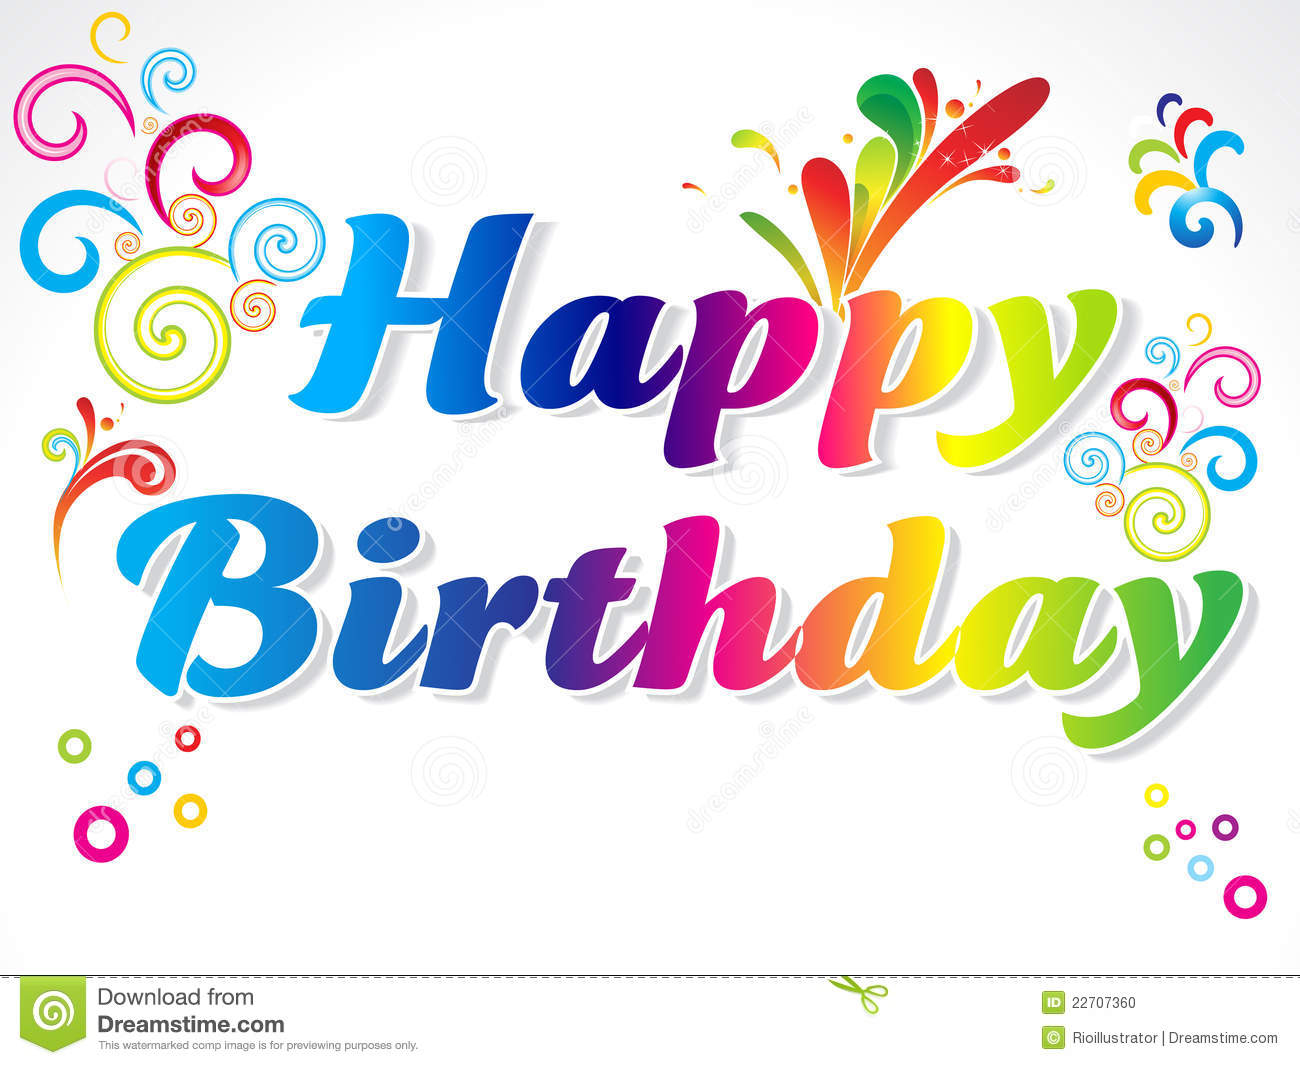 happy birthday card image download ; abstract-colorful-happy-birthday-card-22707360